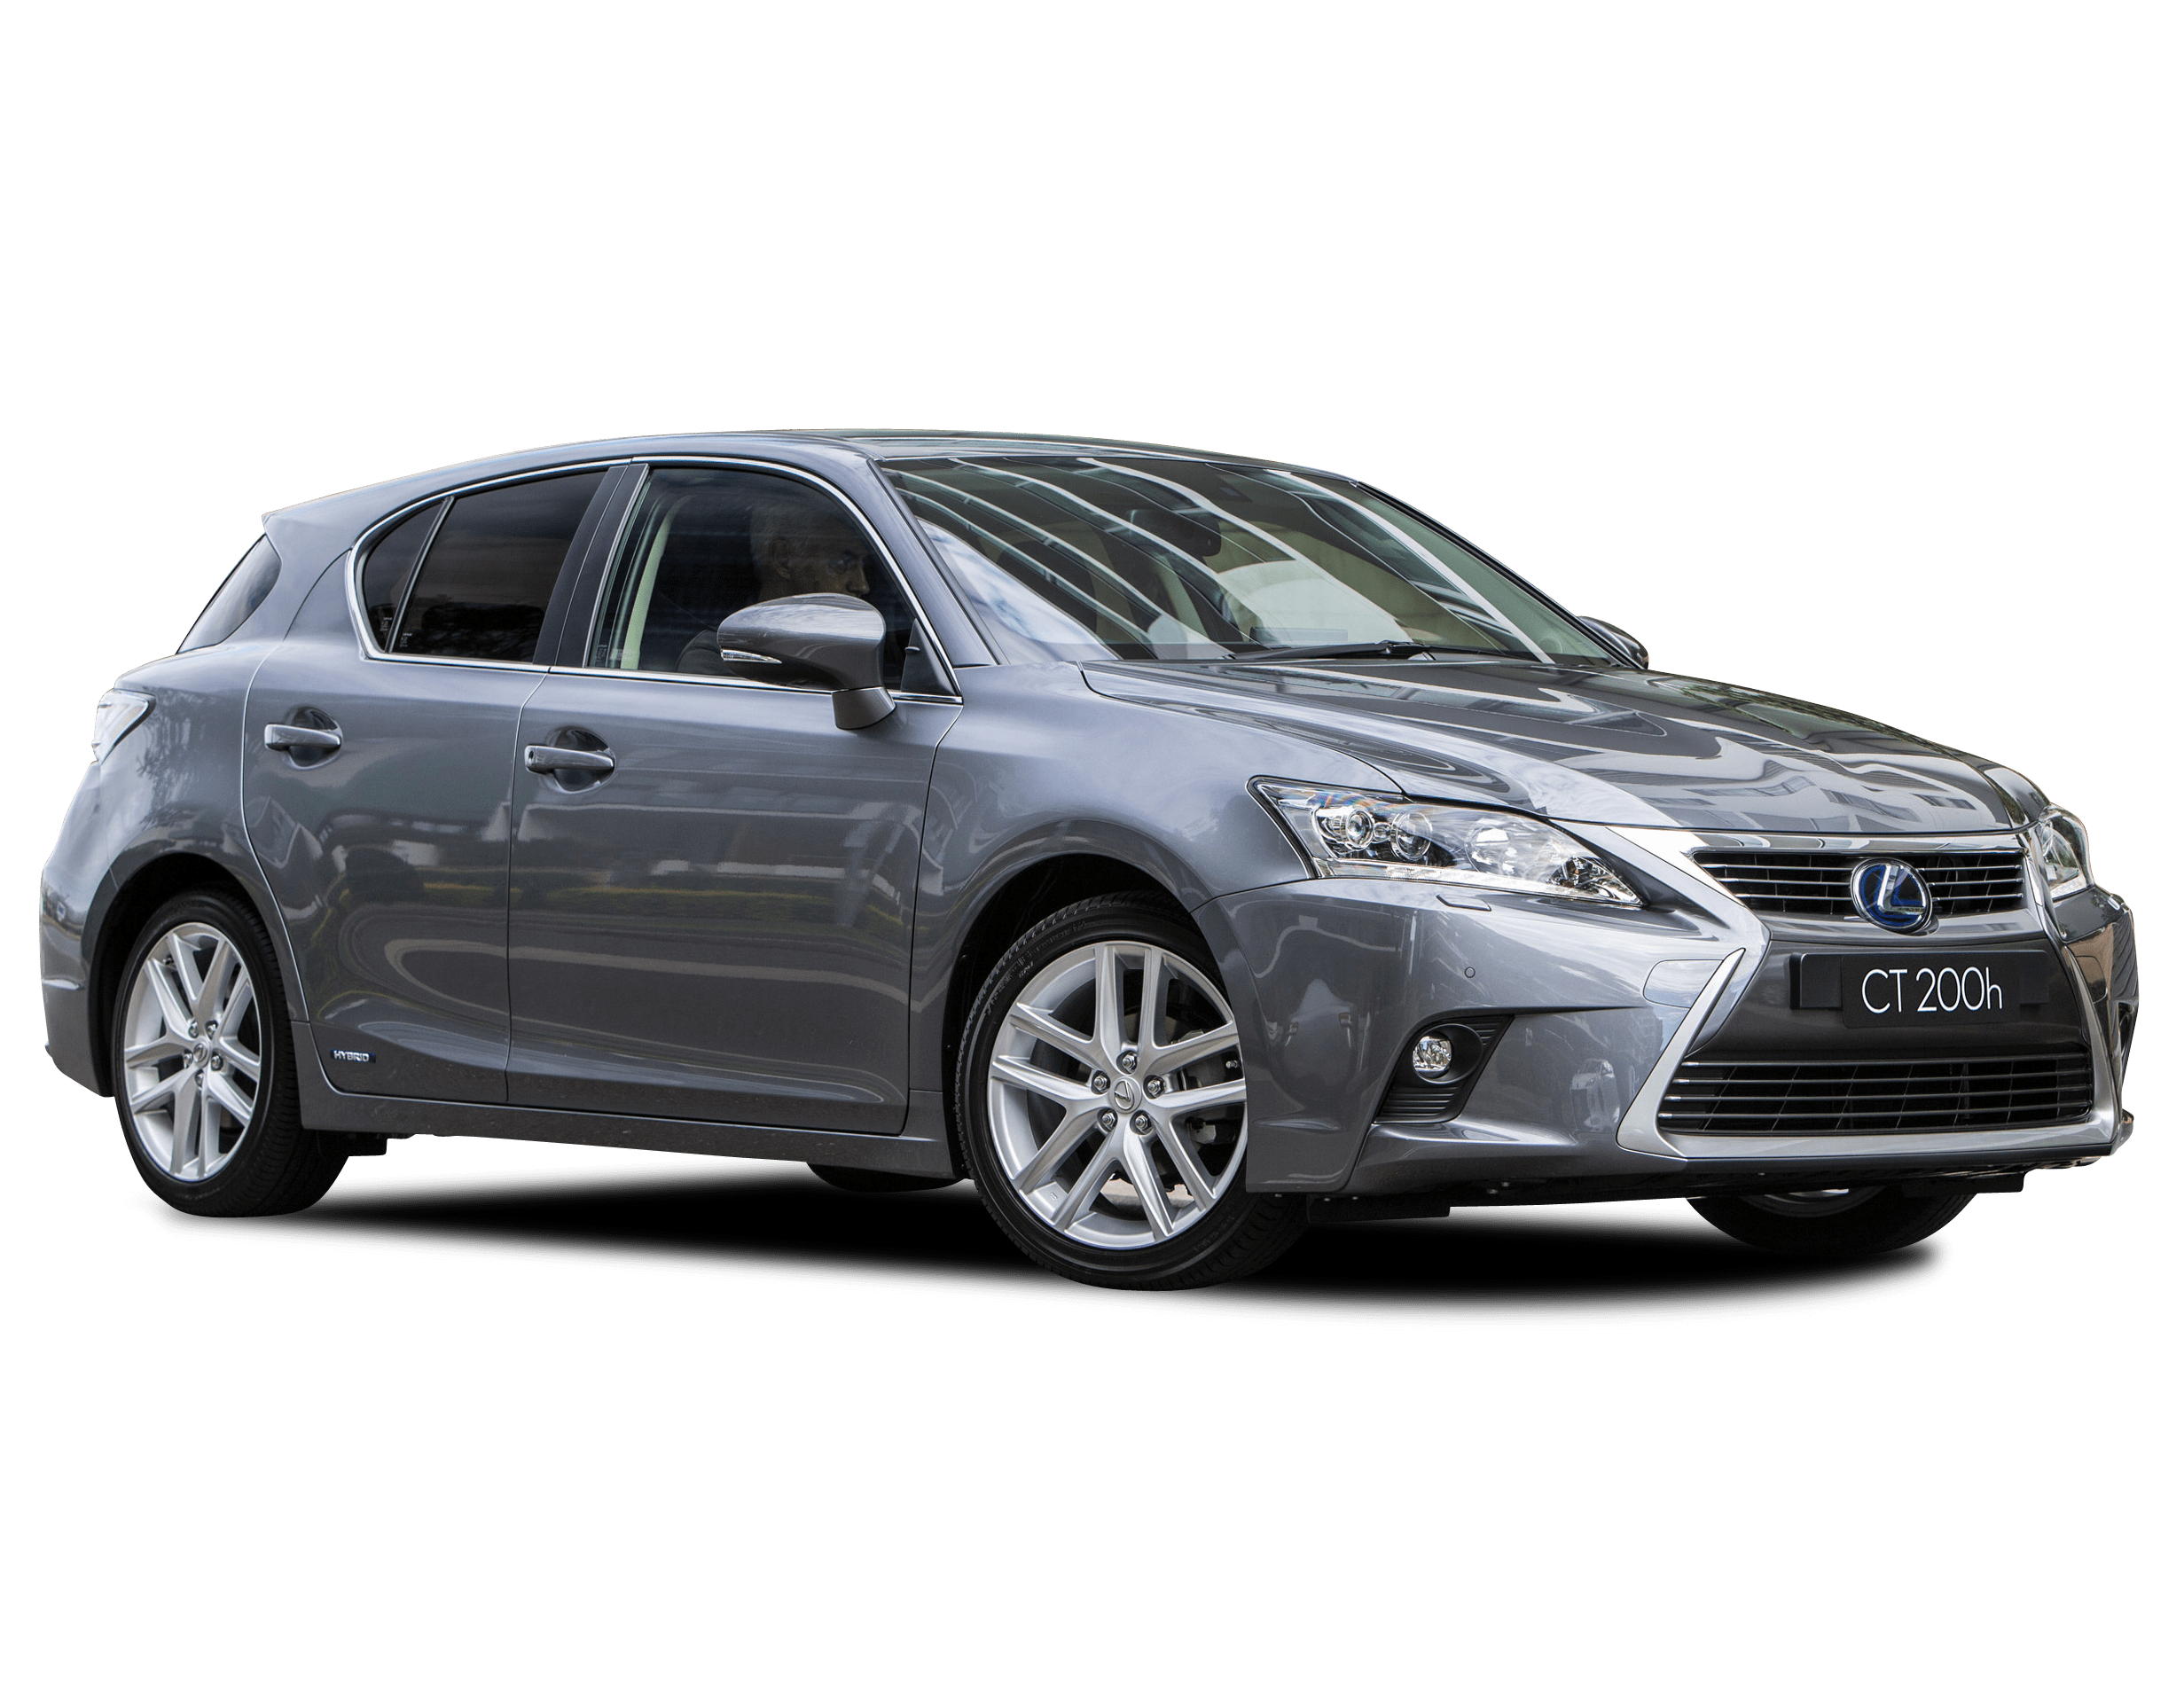 stylish ct nimble lexus the family car and thrifty